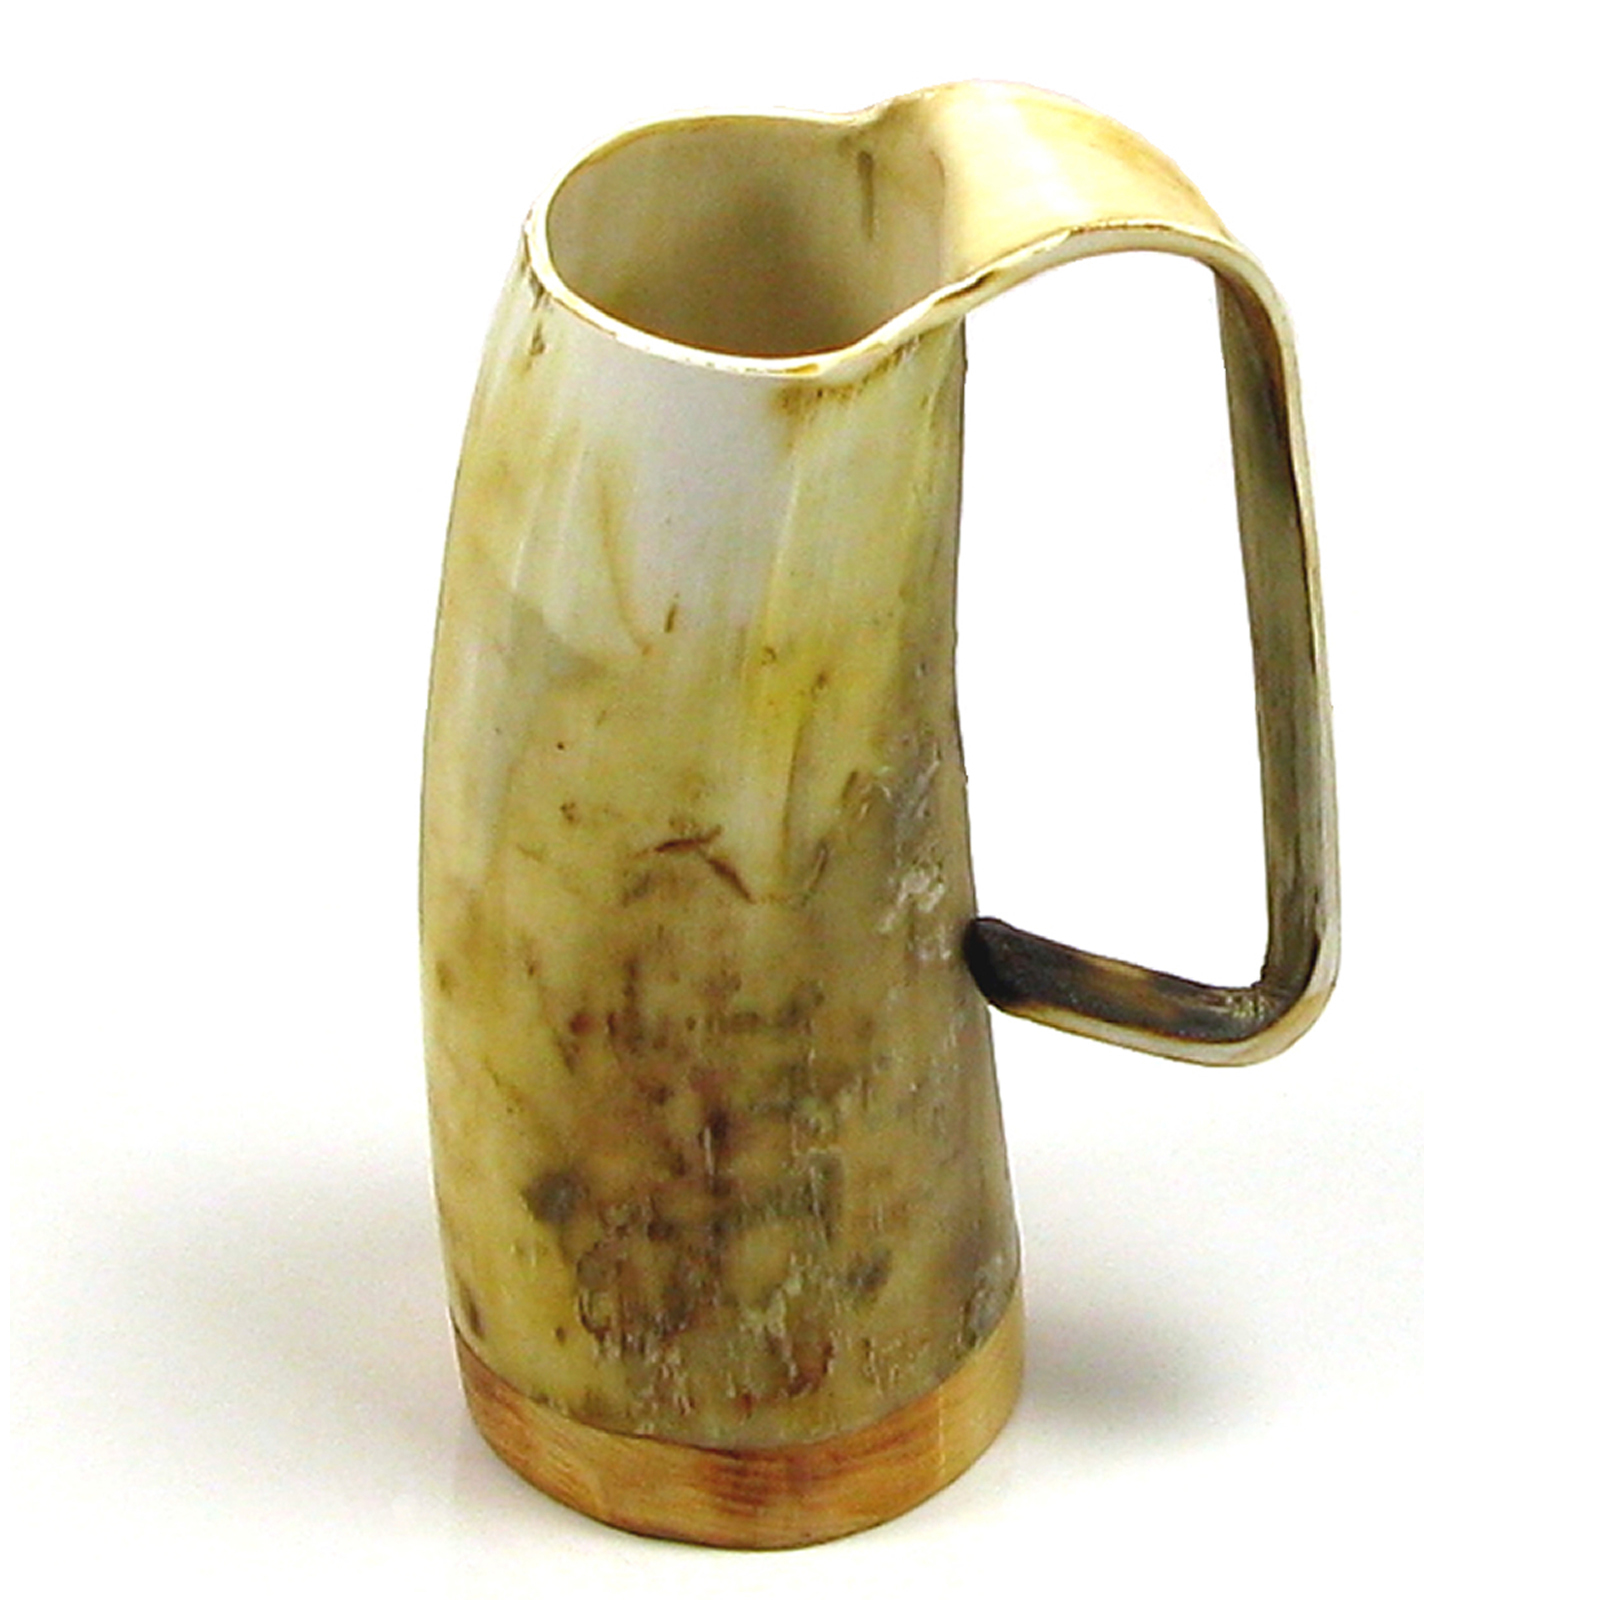 Game of Thrones Soldiers Mead Mug or Tankard  - Unpolished Ox Horn Approx 3/4 pint